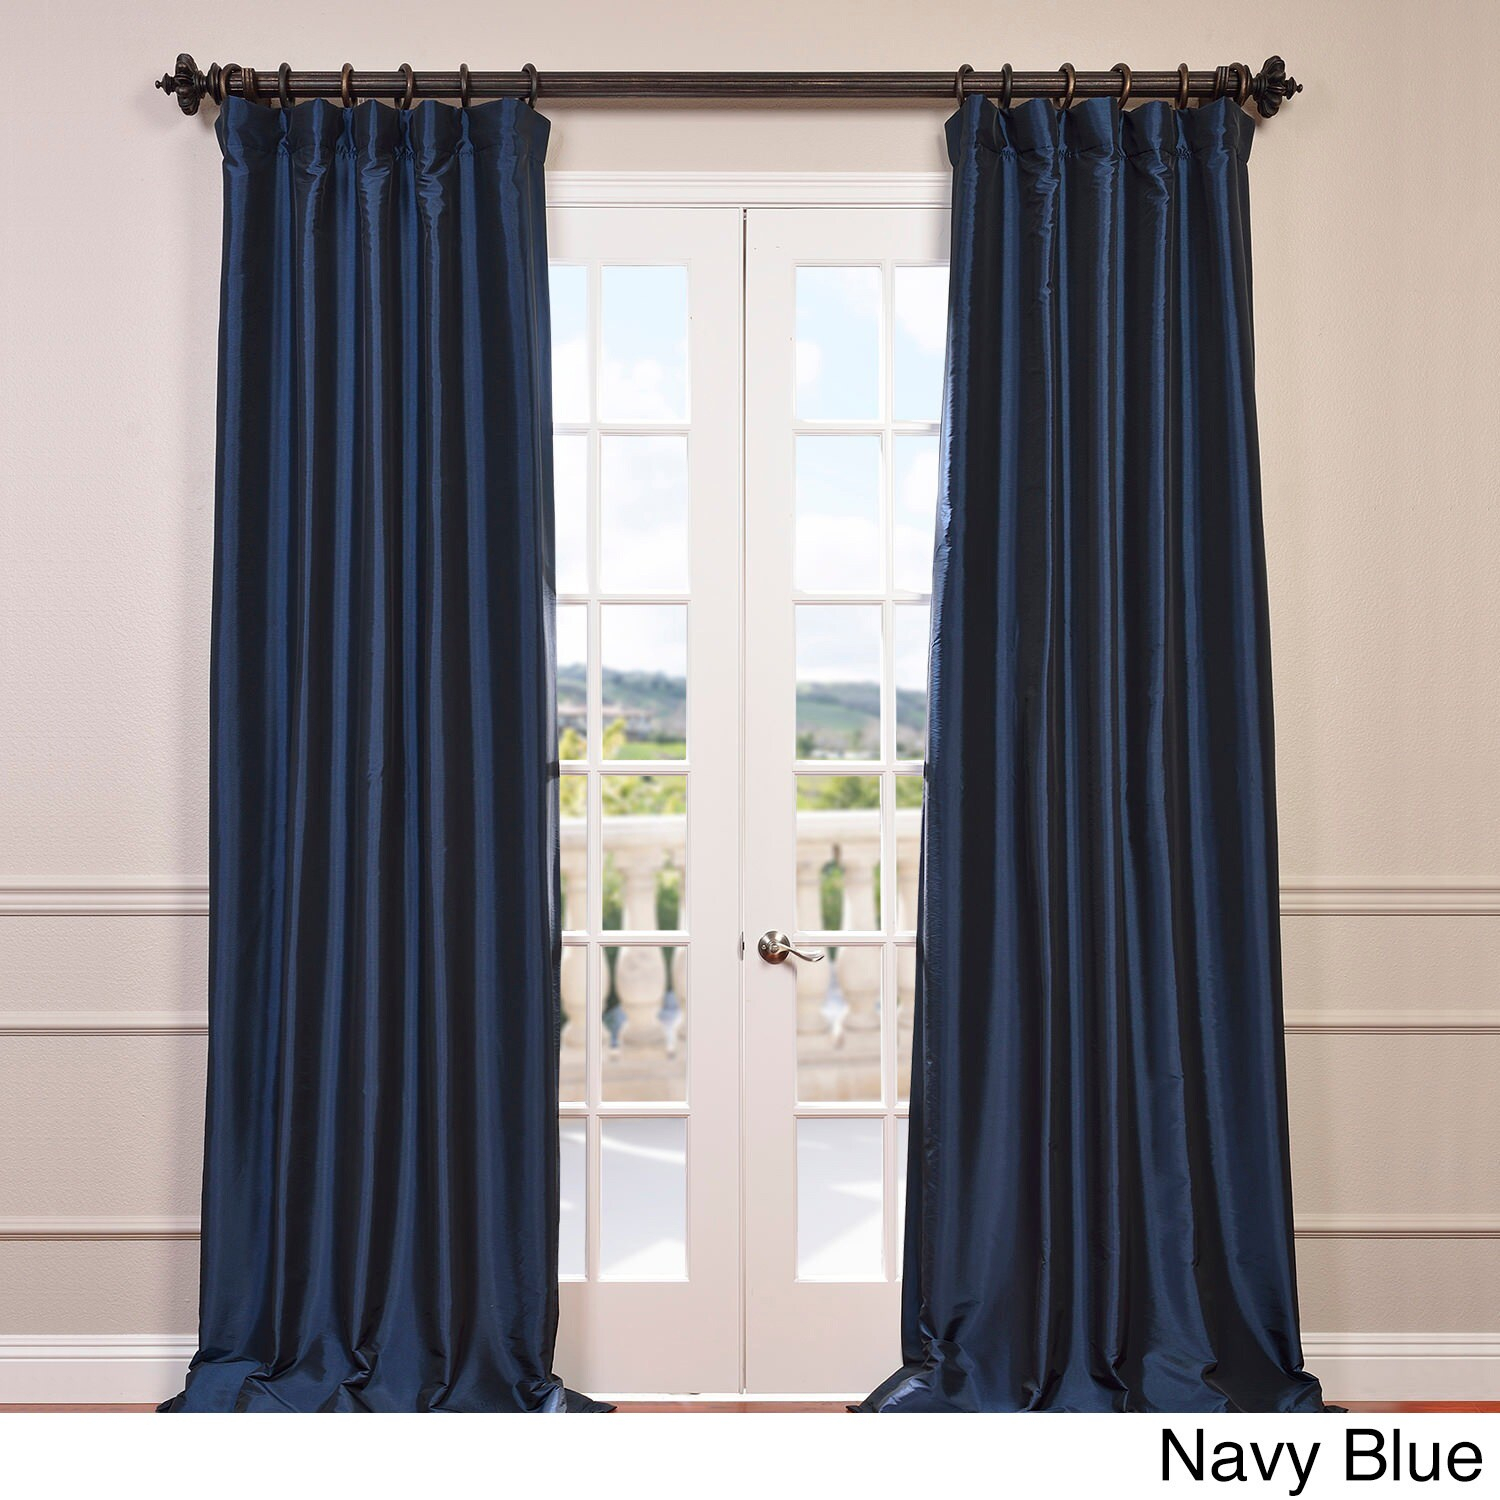 Half Price Drapes Ptch Bo005 108 Blackout Faux Silk Taffeta In Solid Faux Silk Taffeta Graphite Single Curtain Panels (View 17 of 30)